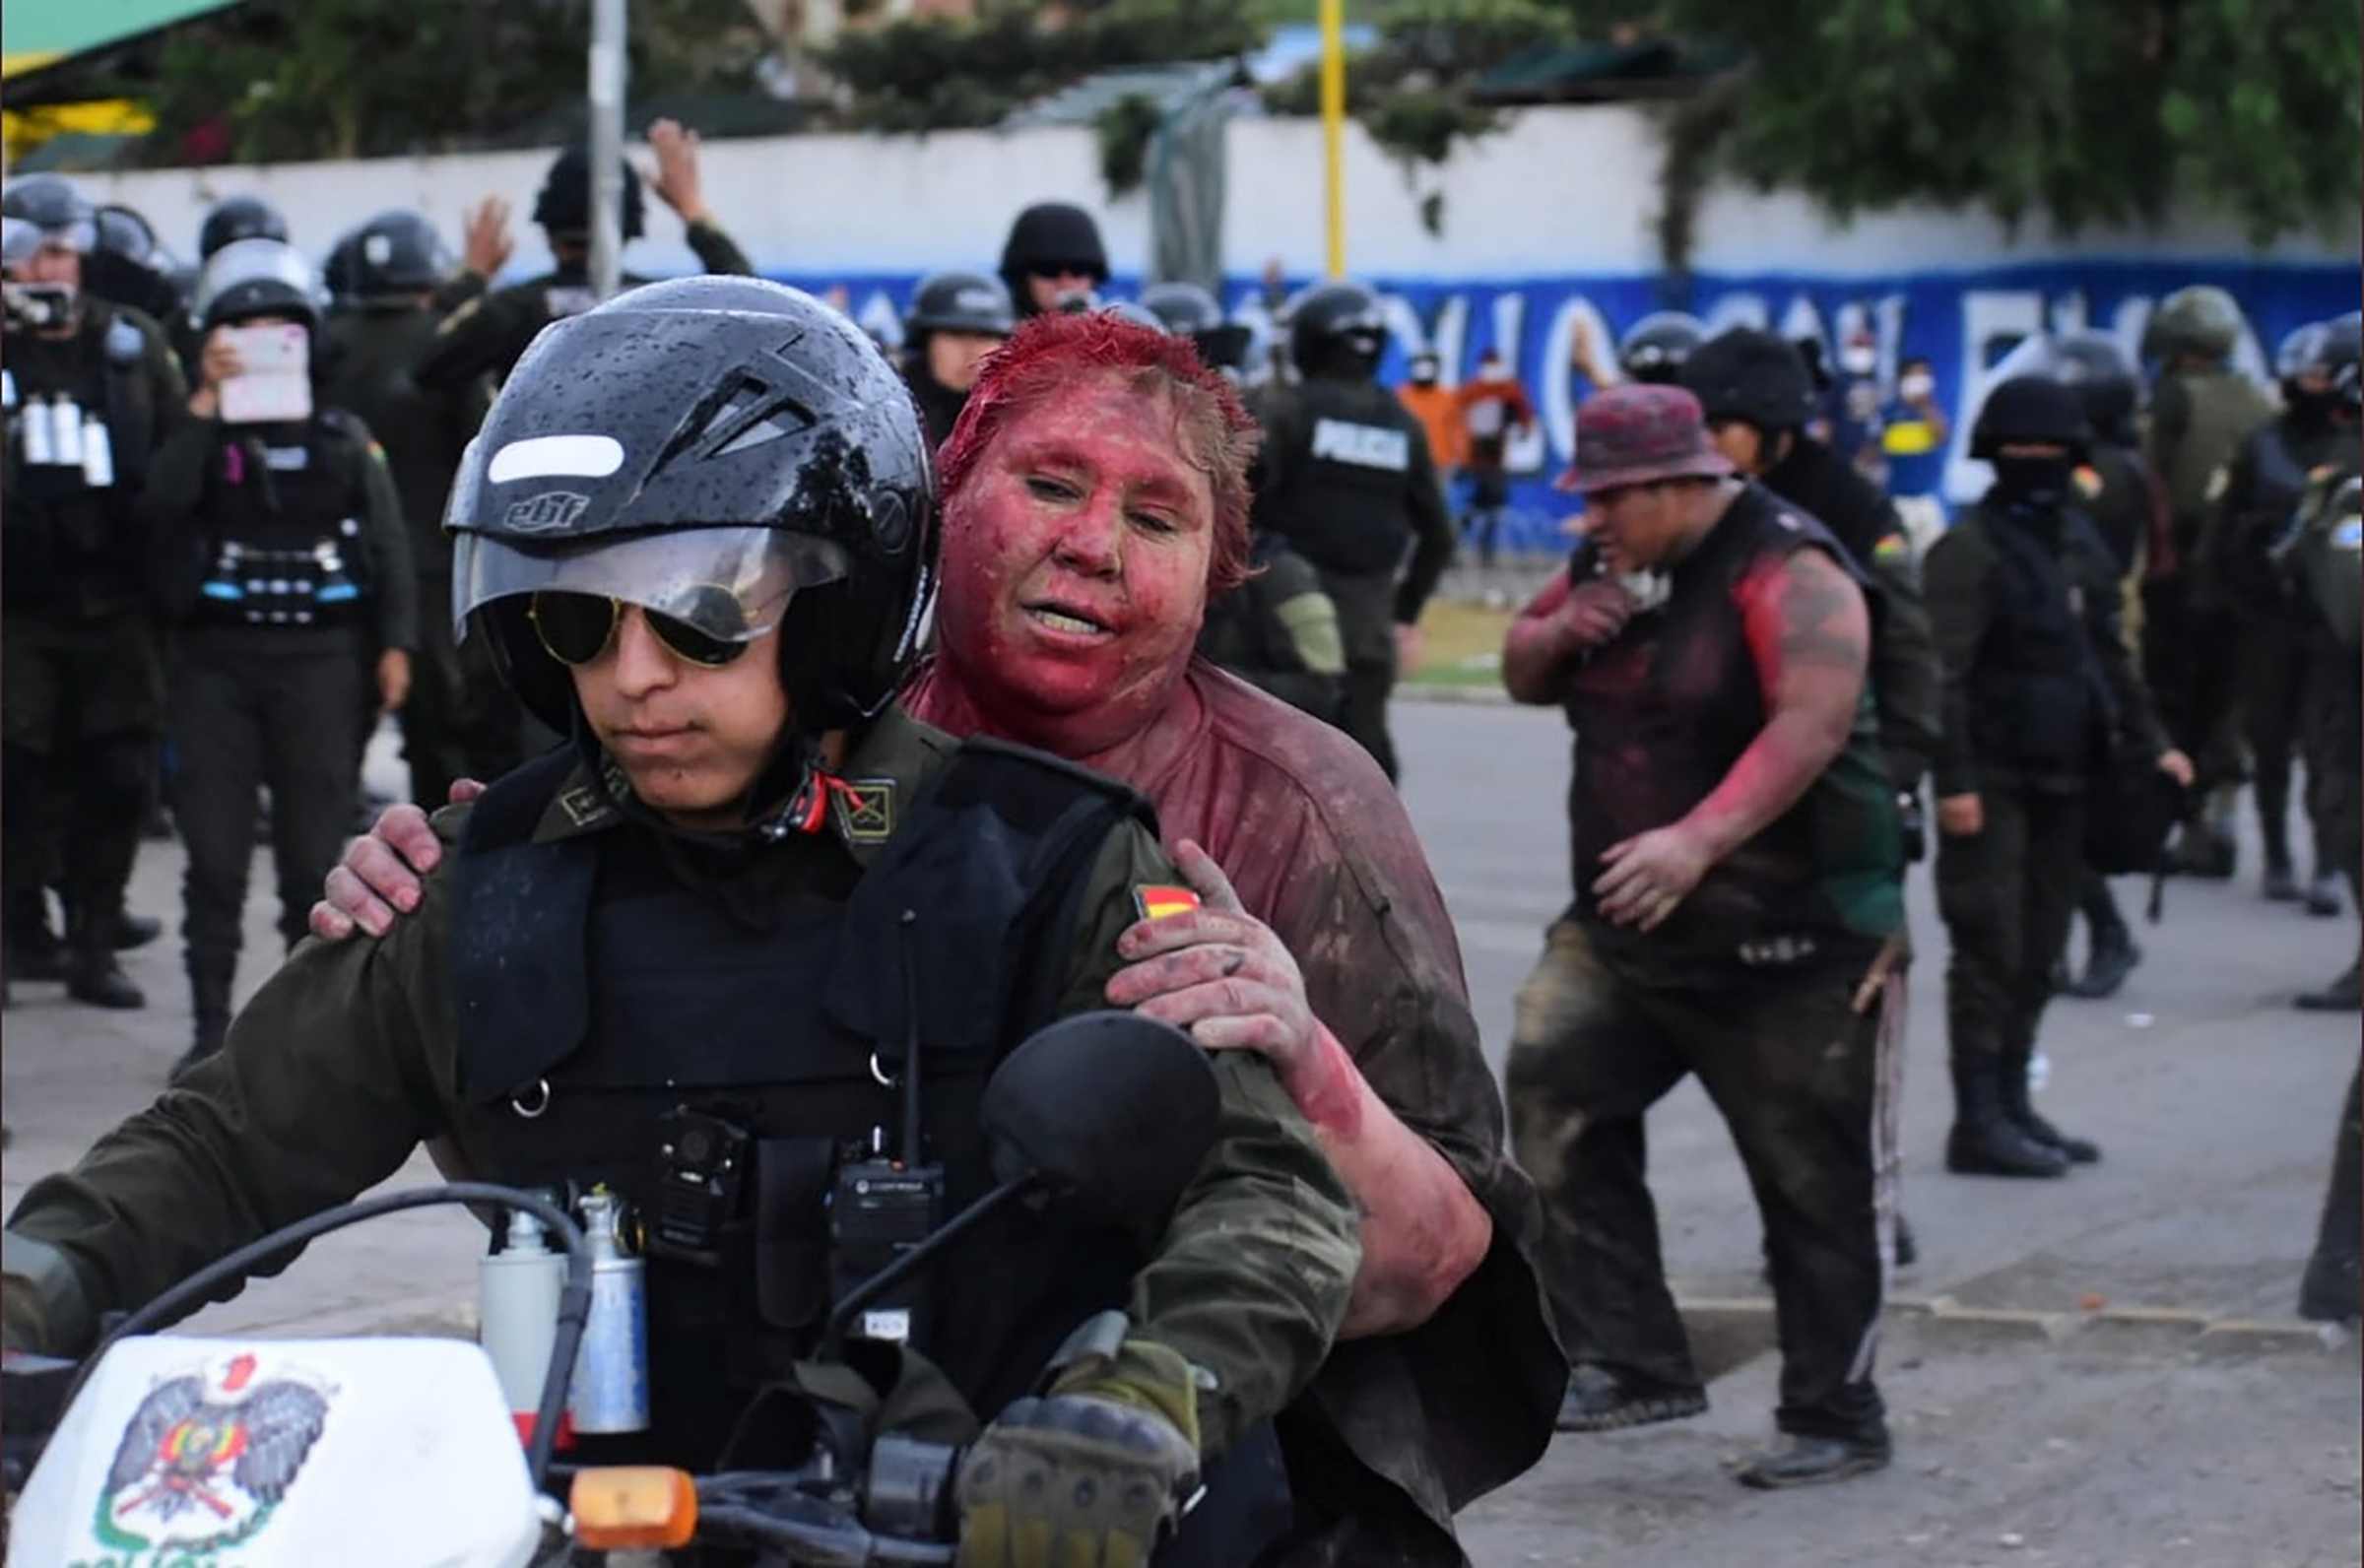 Police rescue Vinto mayor Patricia Arce Guzman on a motorcycle after people threw paint and dirt on her following a fire in Vinto's Town Hall, in Quillacollo, Bolivia, on Nov. 6, 2019.